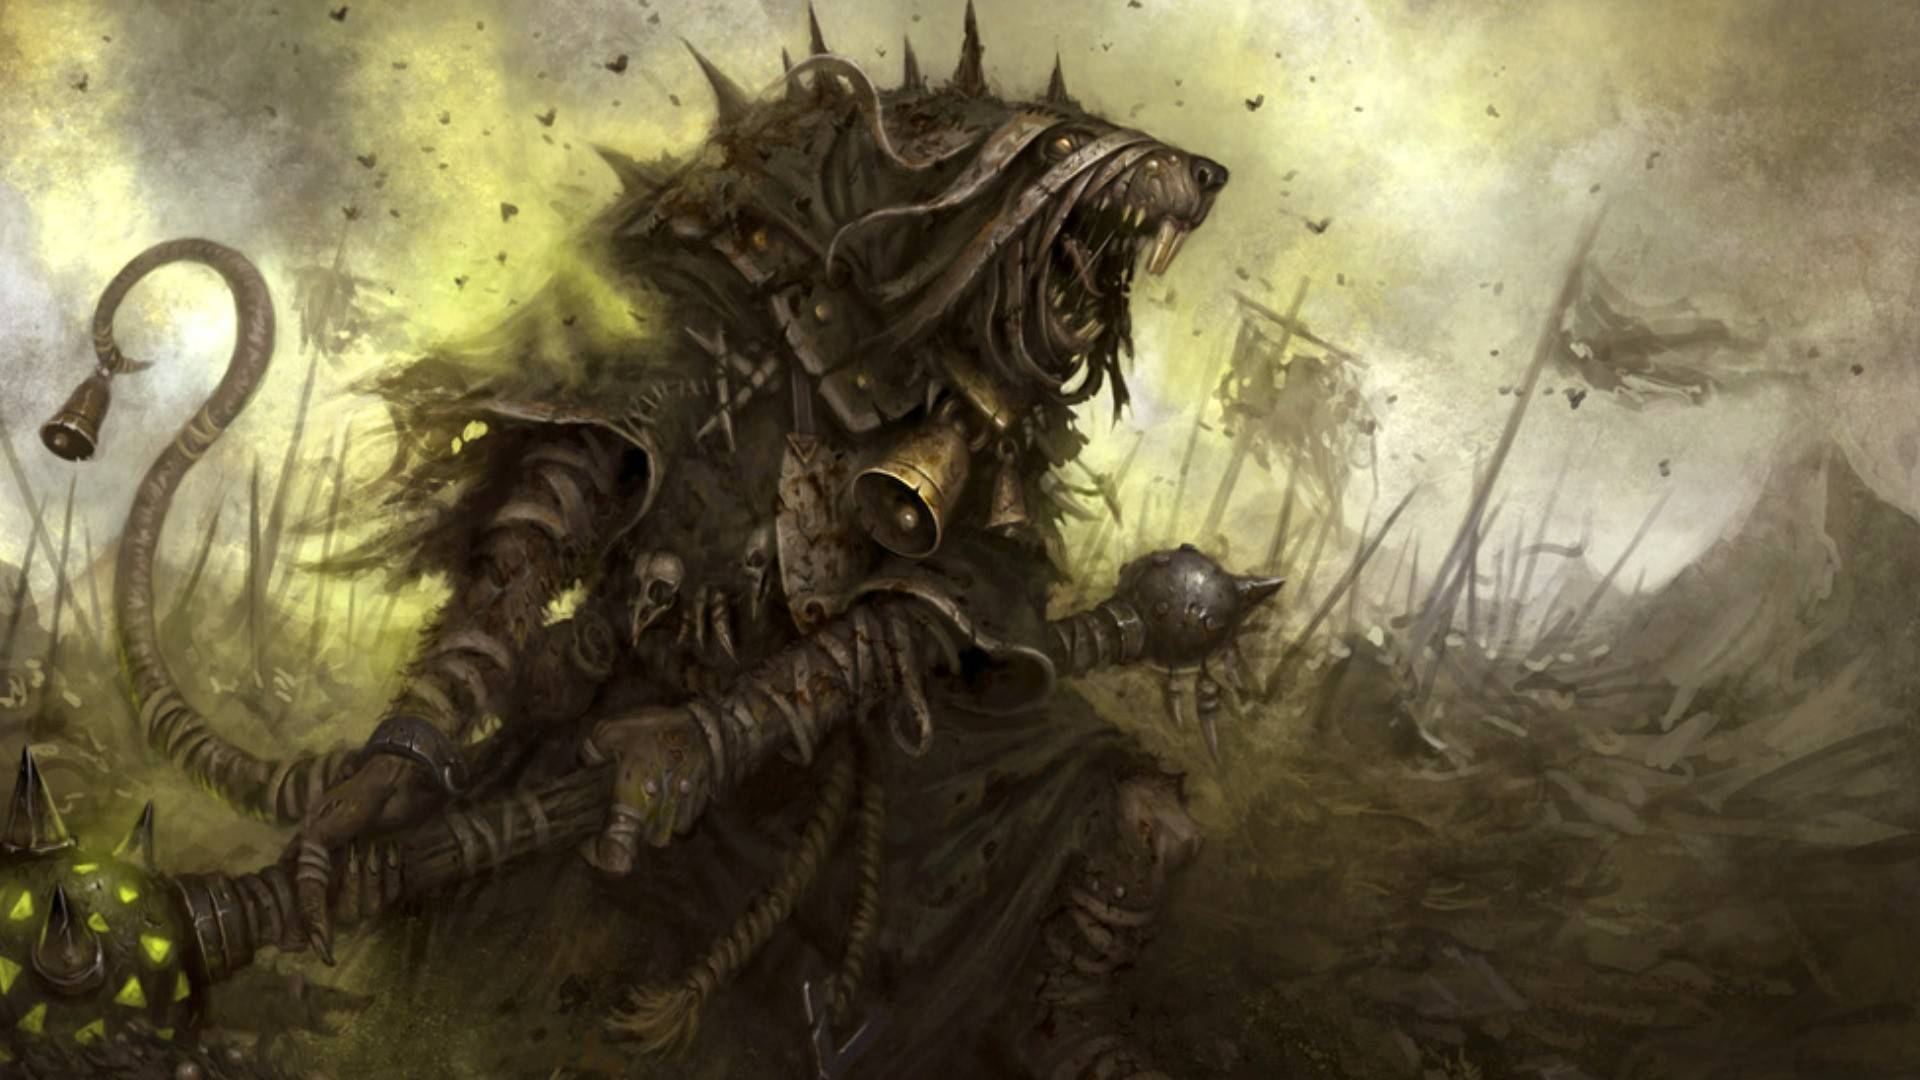 Warhammer-fantasy-1920x1080-wallpaper-2368751.jpg